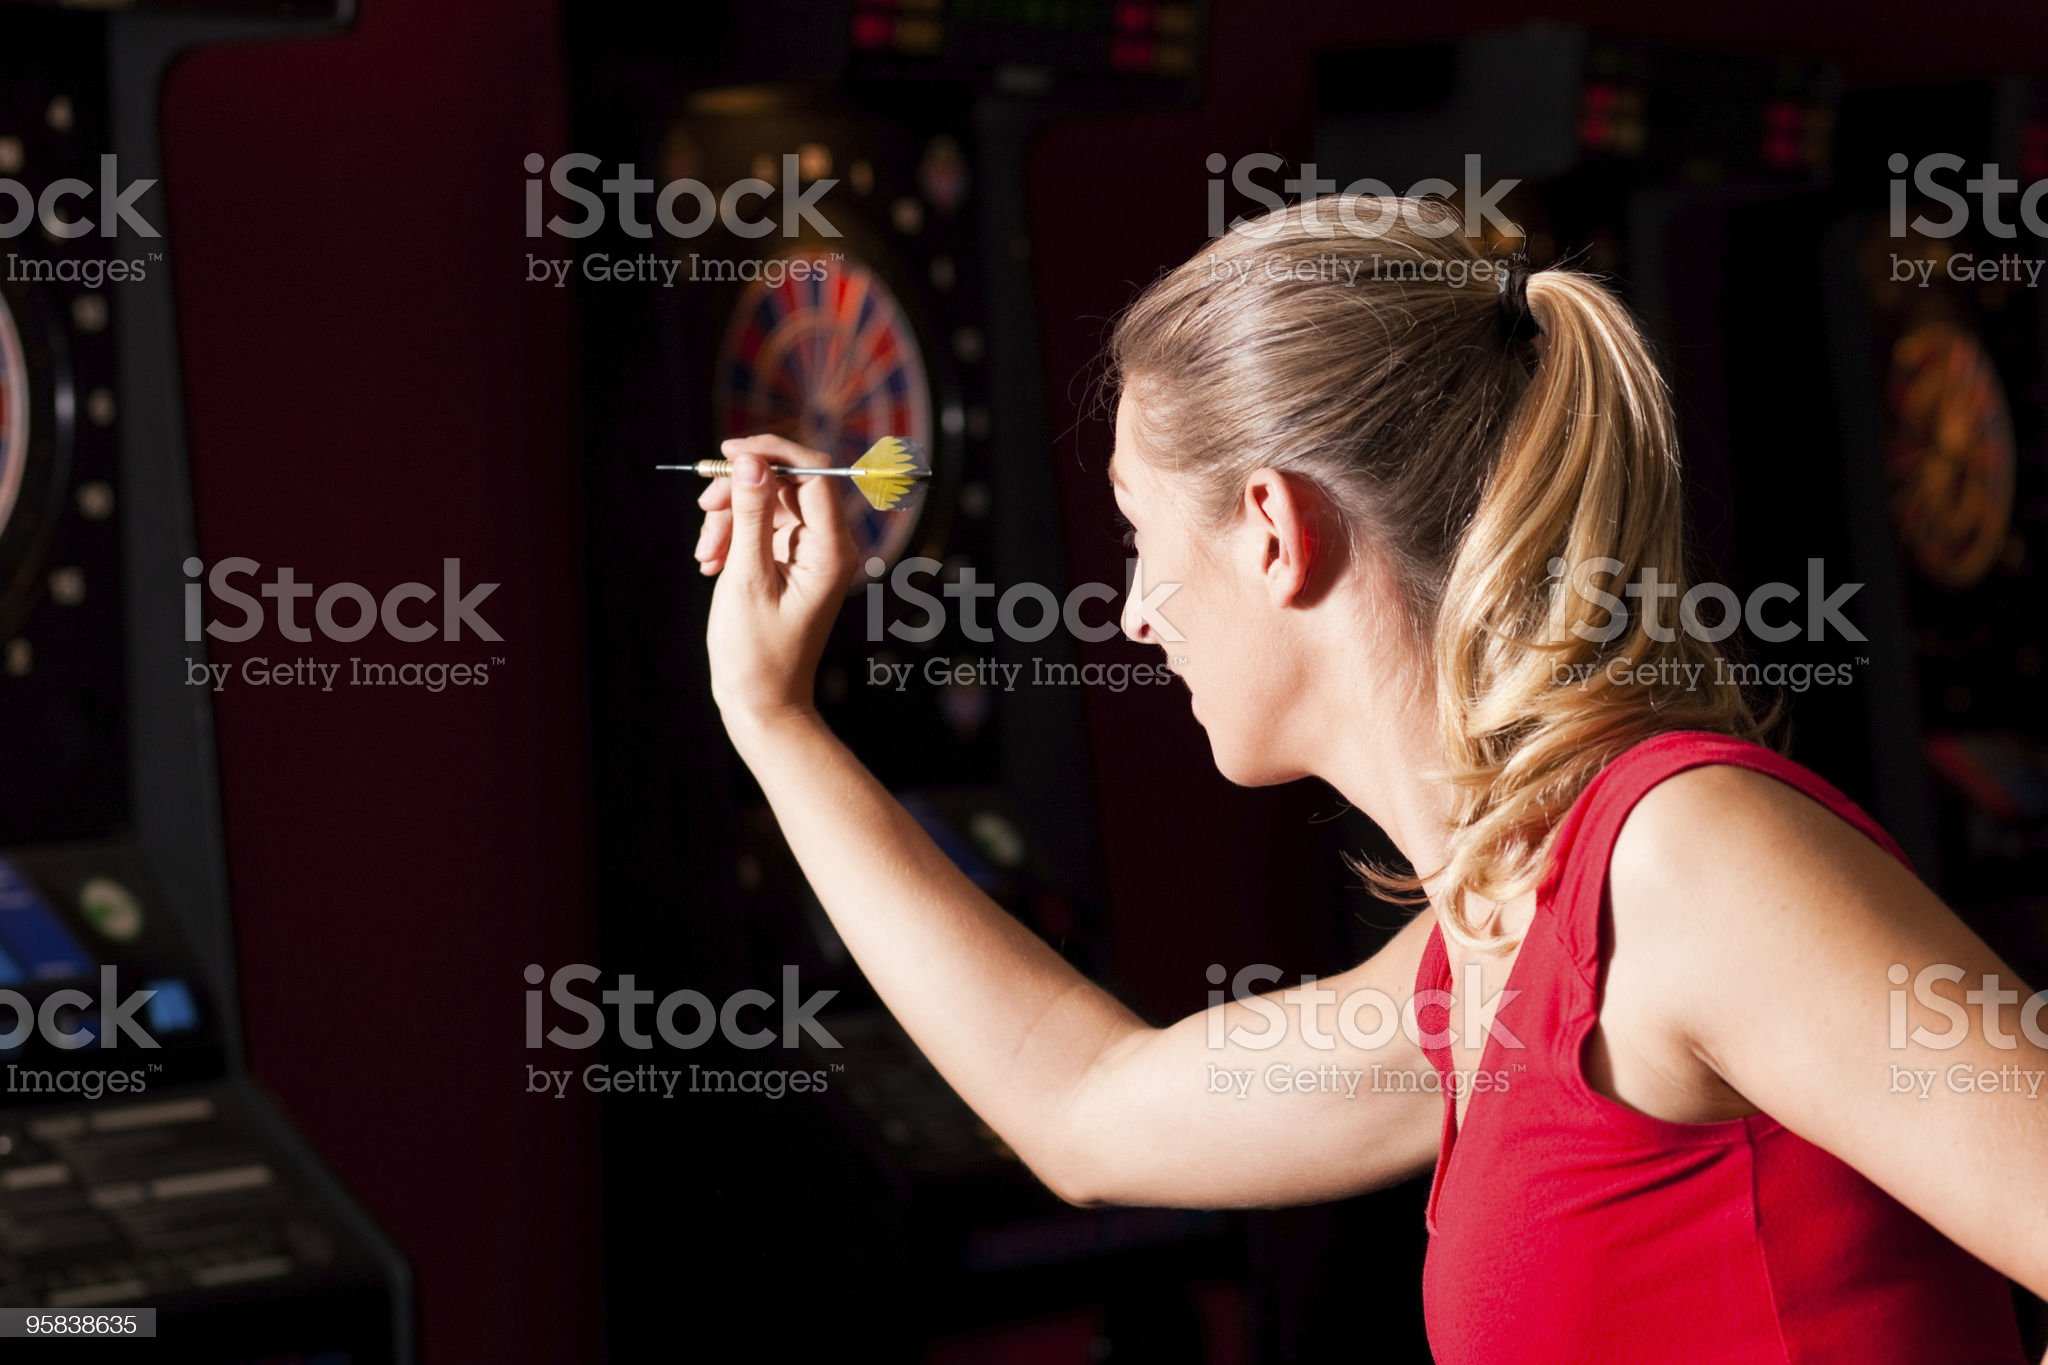 Woman playing darts in a red dress royalty-free stock photo